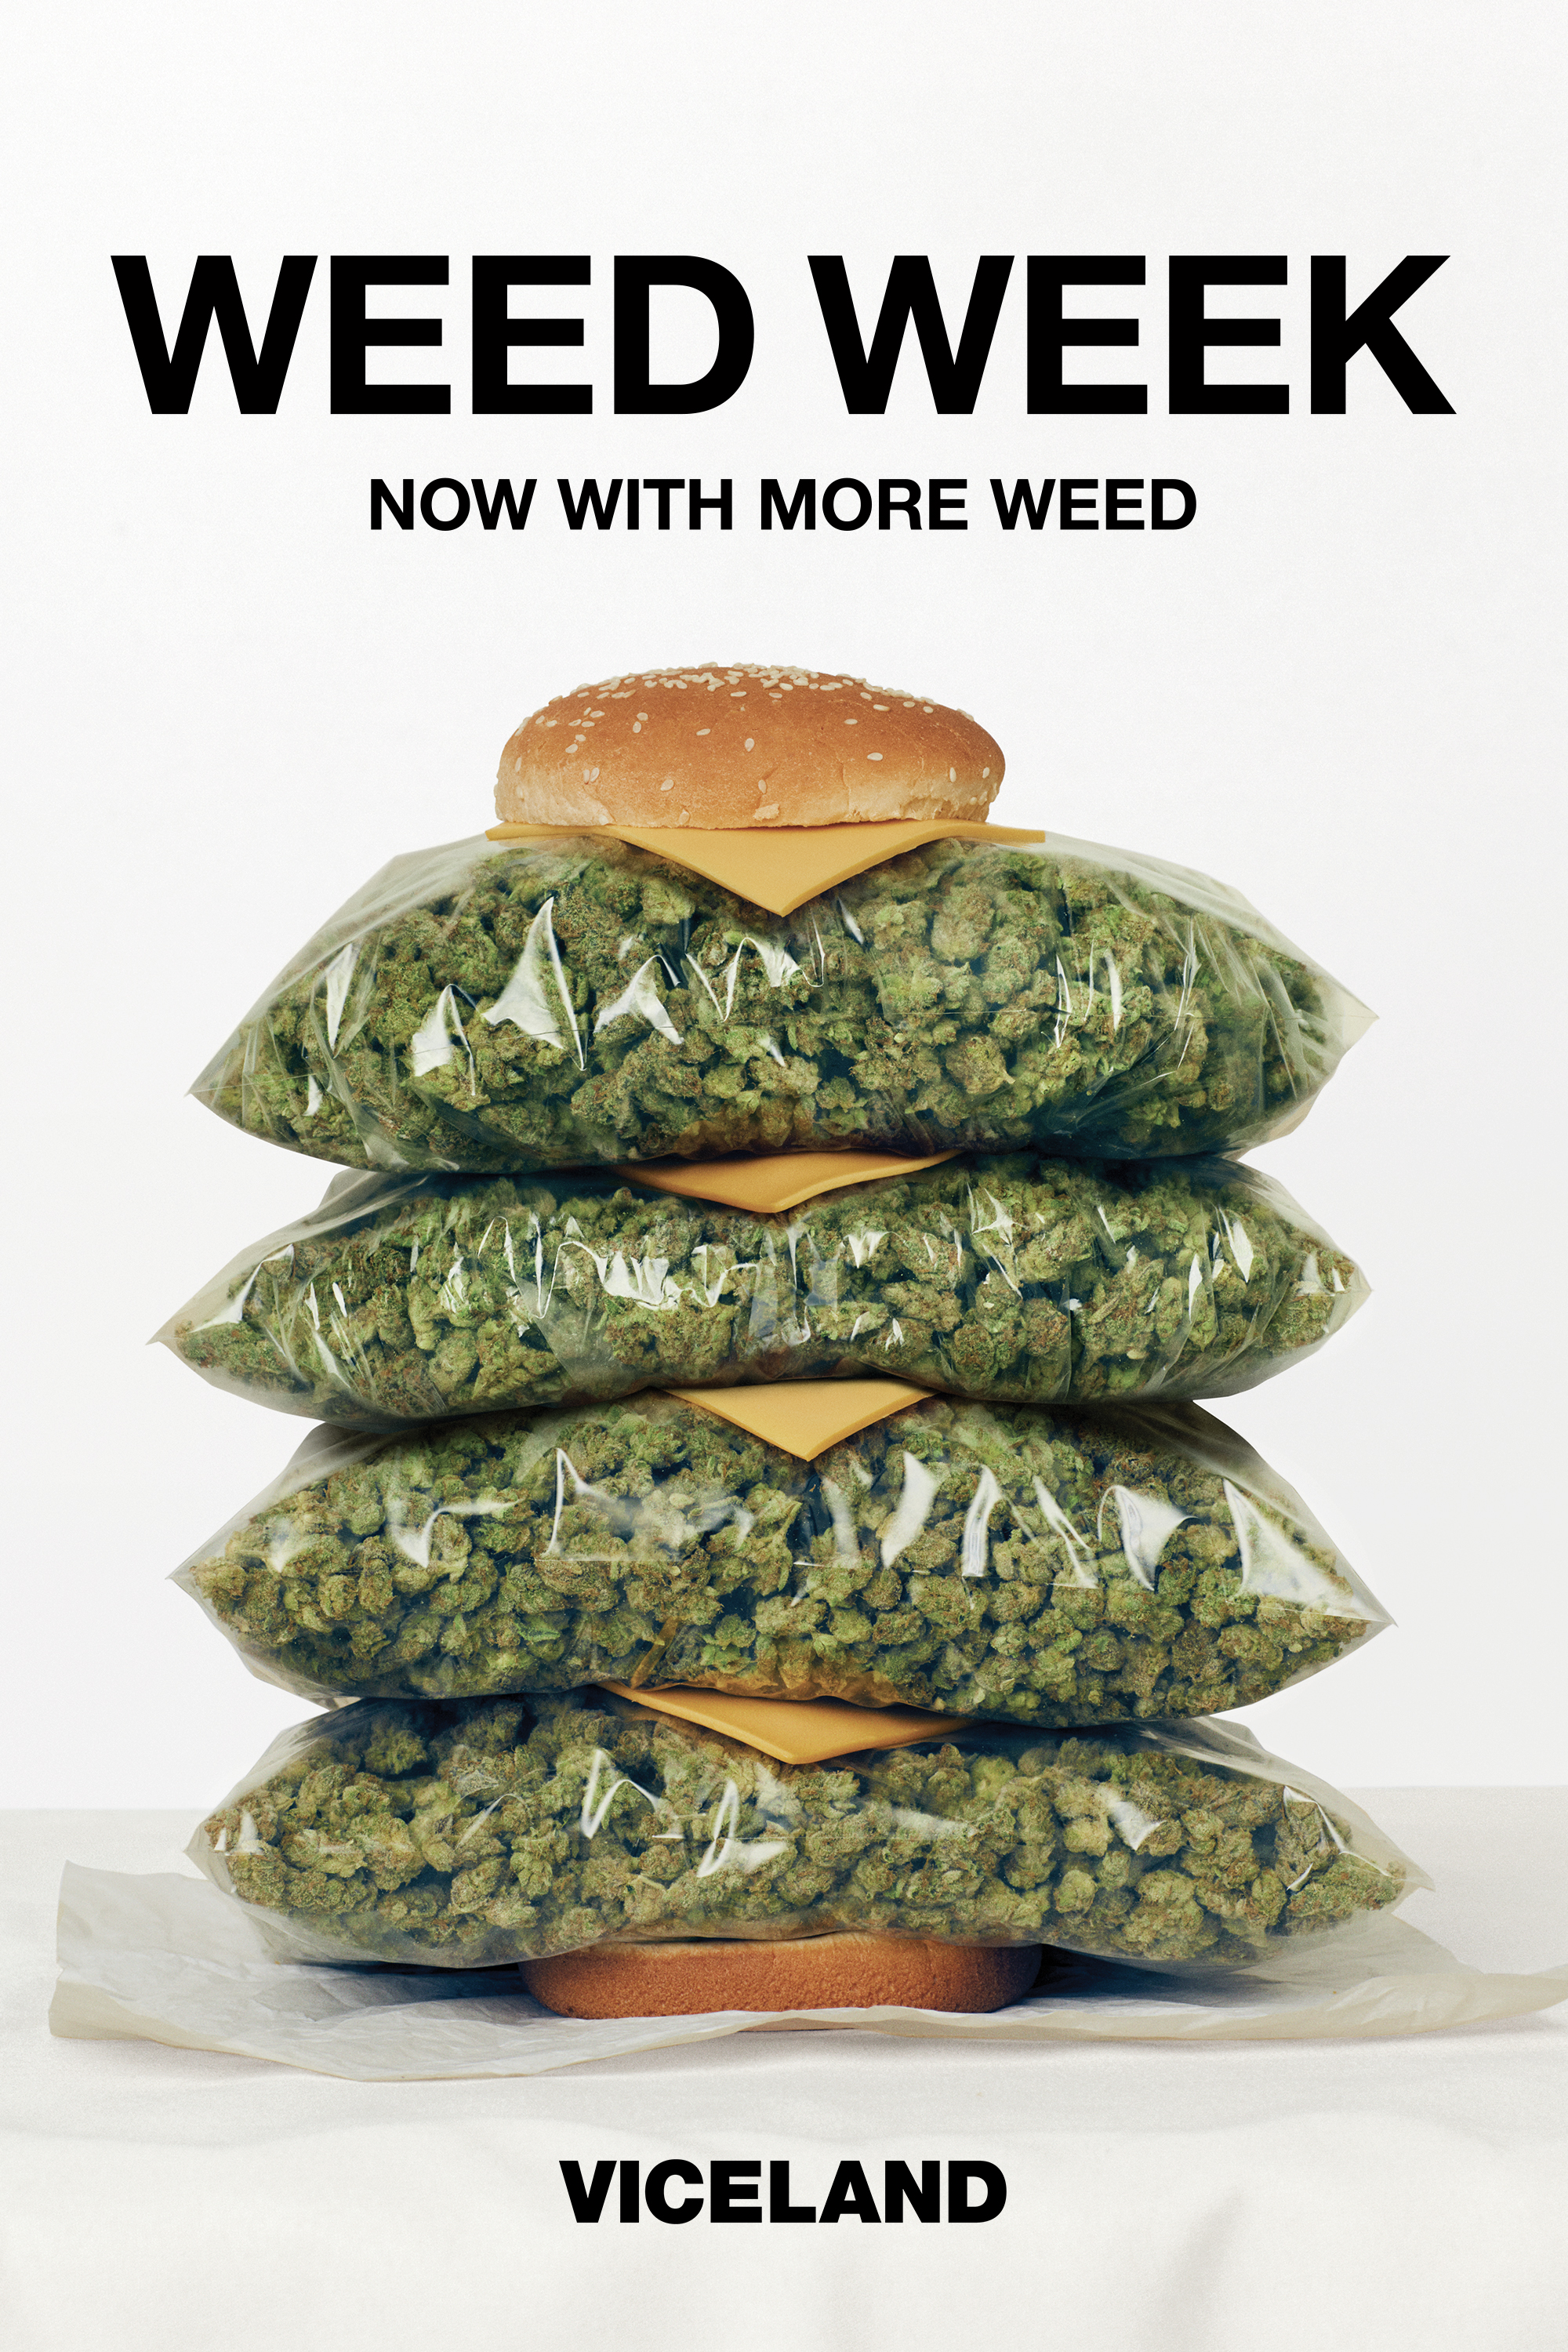 WEEDWEEK_KEYART.jpg